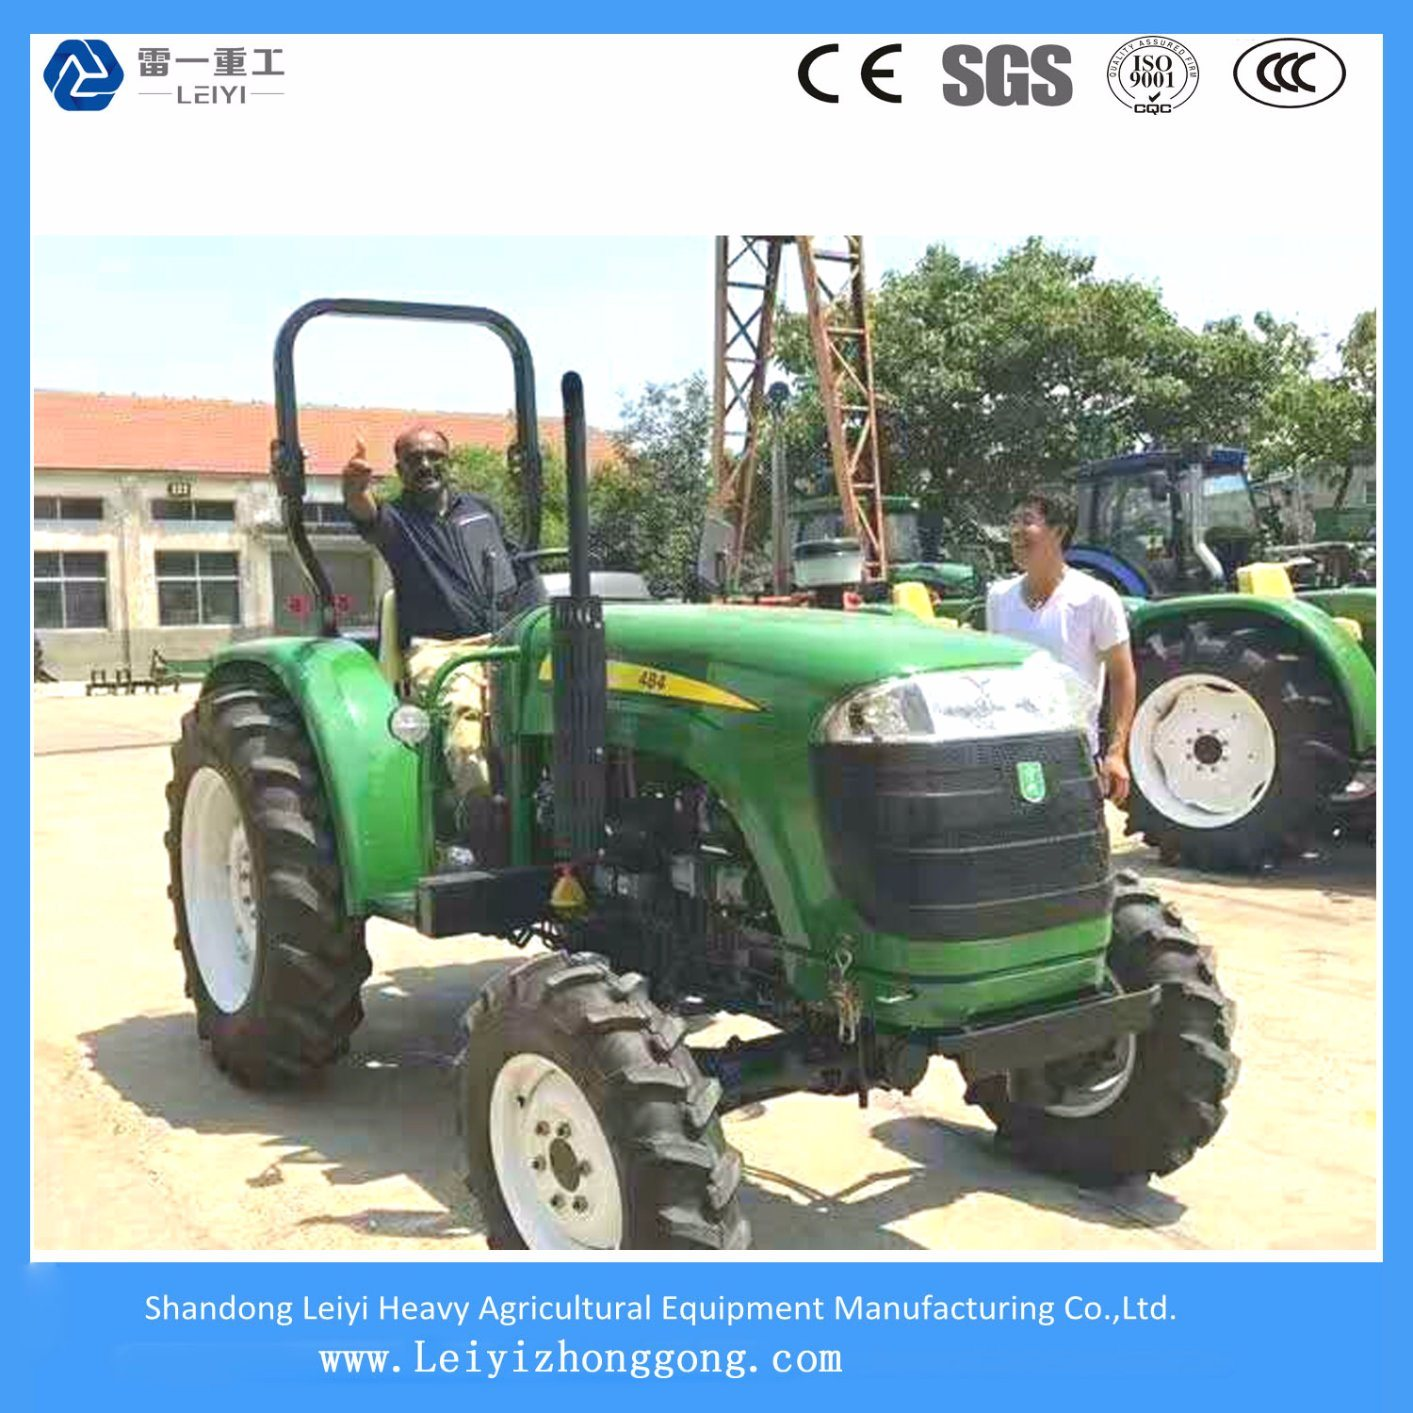 40HP-200HP Agricultural Wheeled Tractor, Farm Tractor, Compact Tractor with 2 Wd & 4 Wd